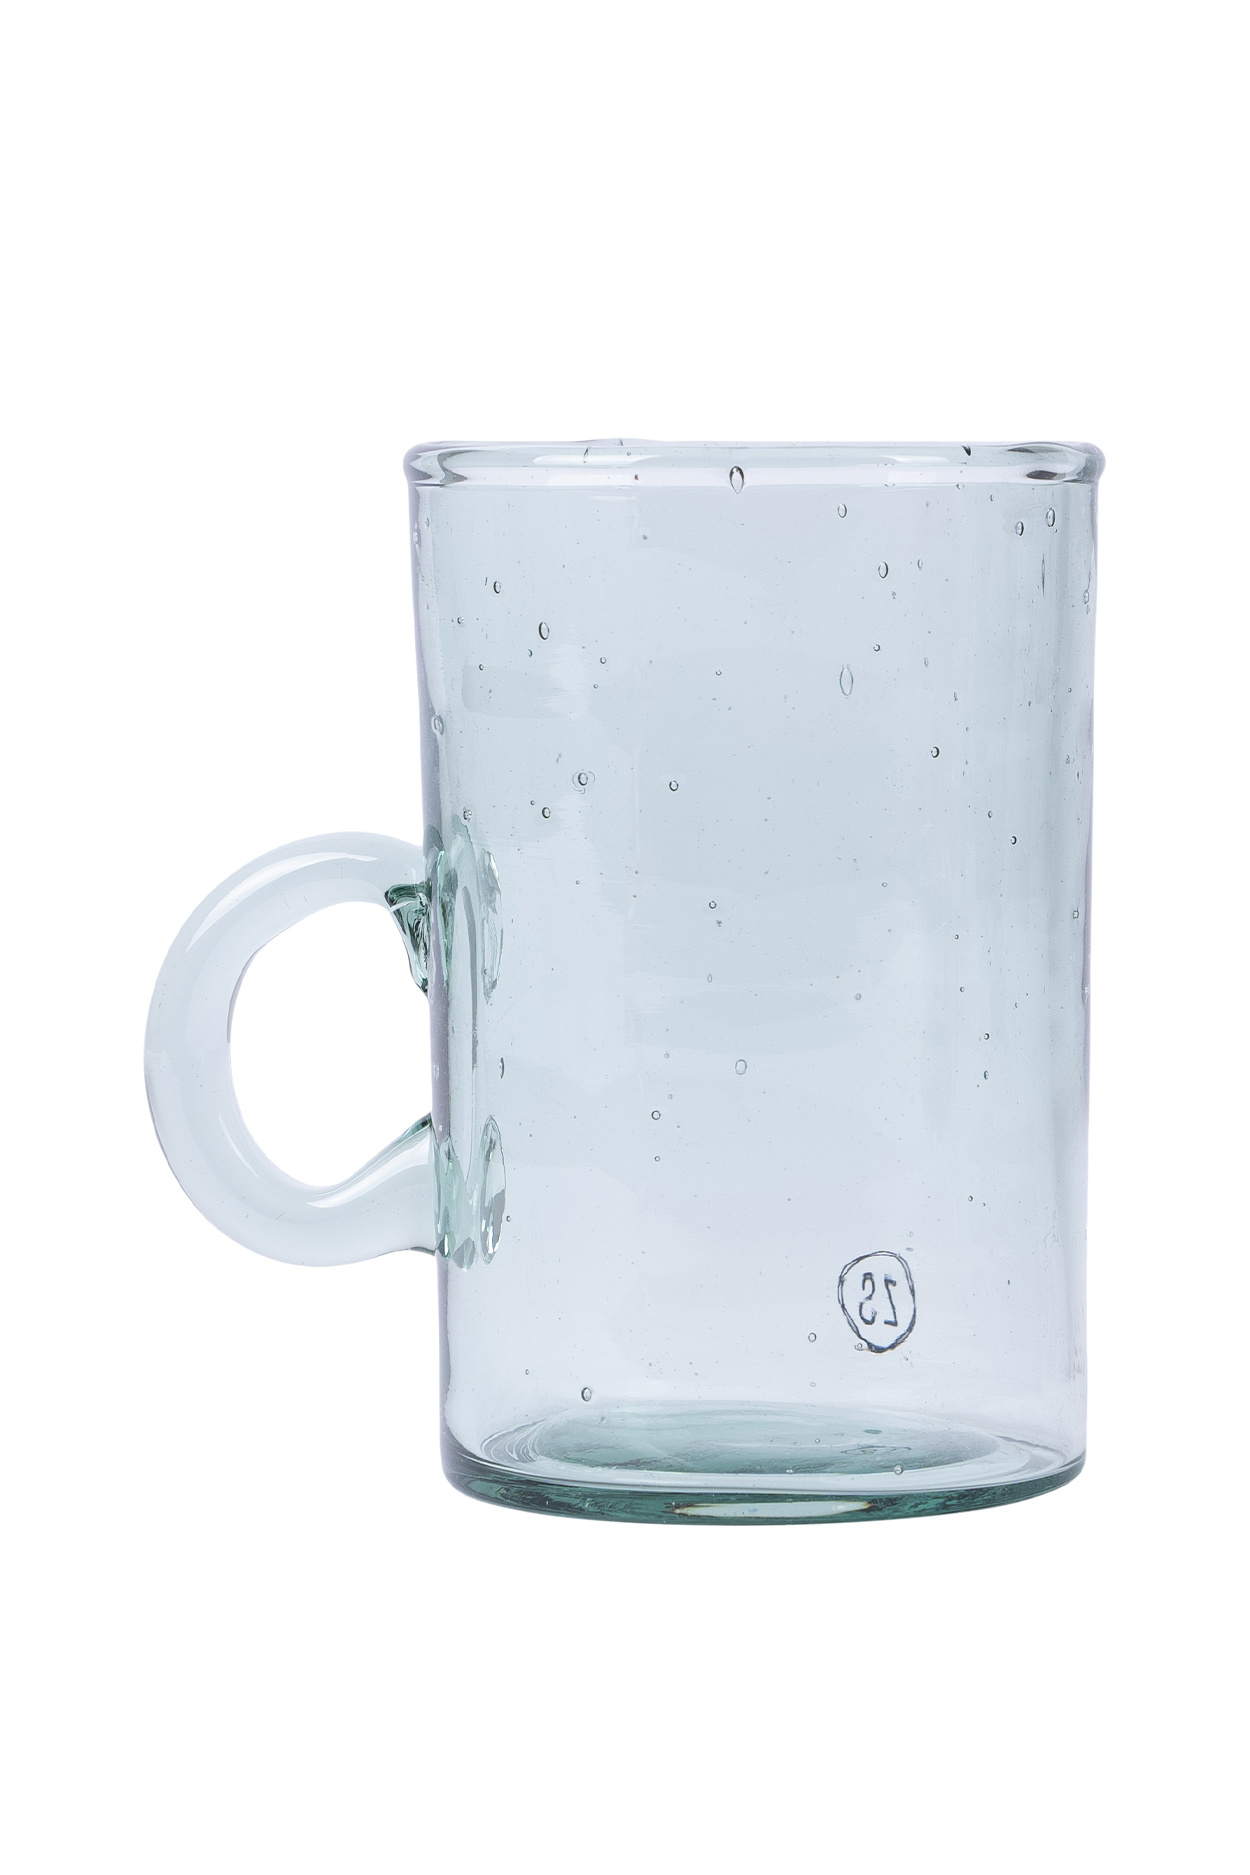 Zusss Theeglas gerecycled glas